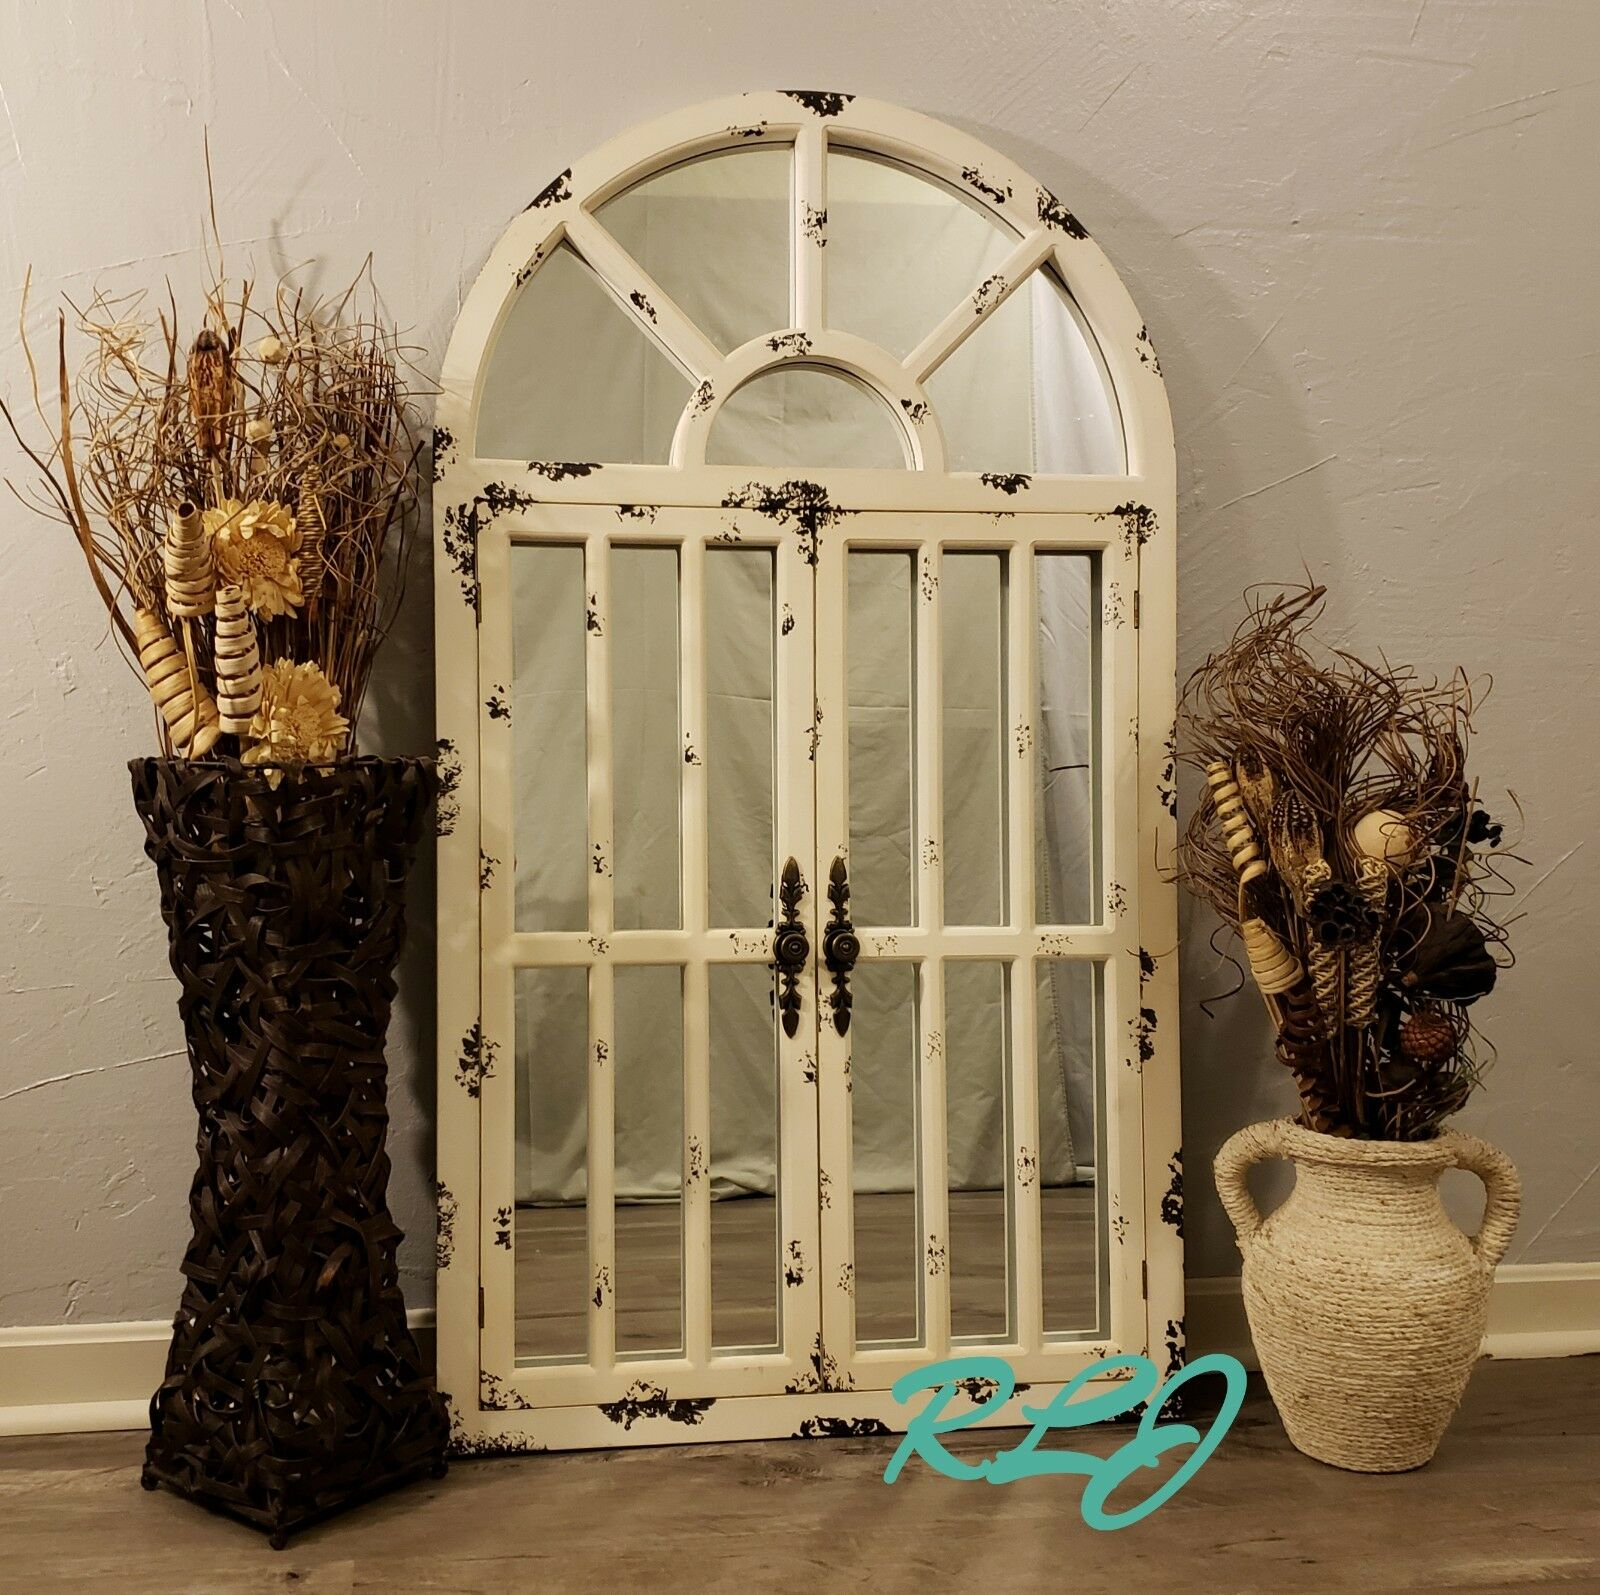 Distressed Rustic Country Arched Window Door Wood Mirror Vintage Wall Art Decor With Faux Window Wood Wall Mirrors (View 18 of 20)